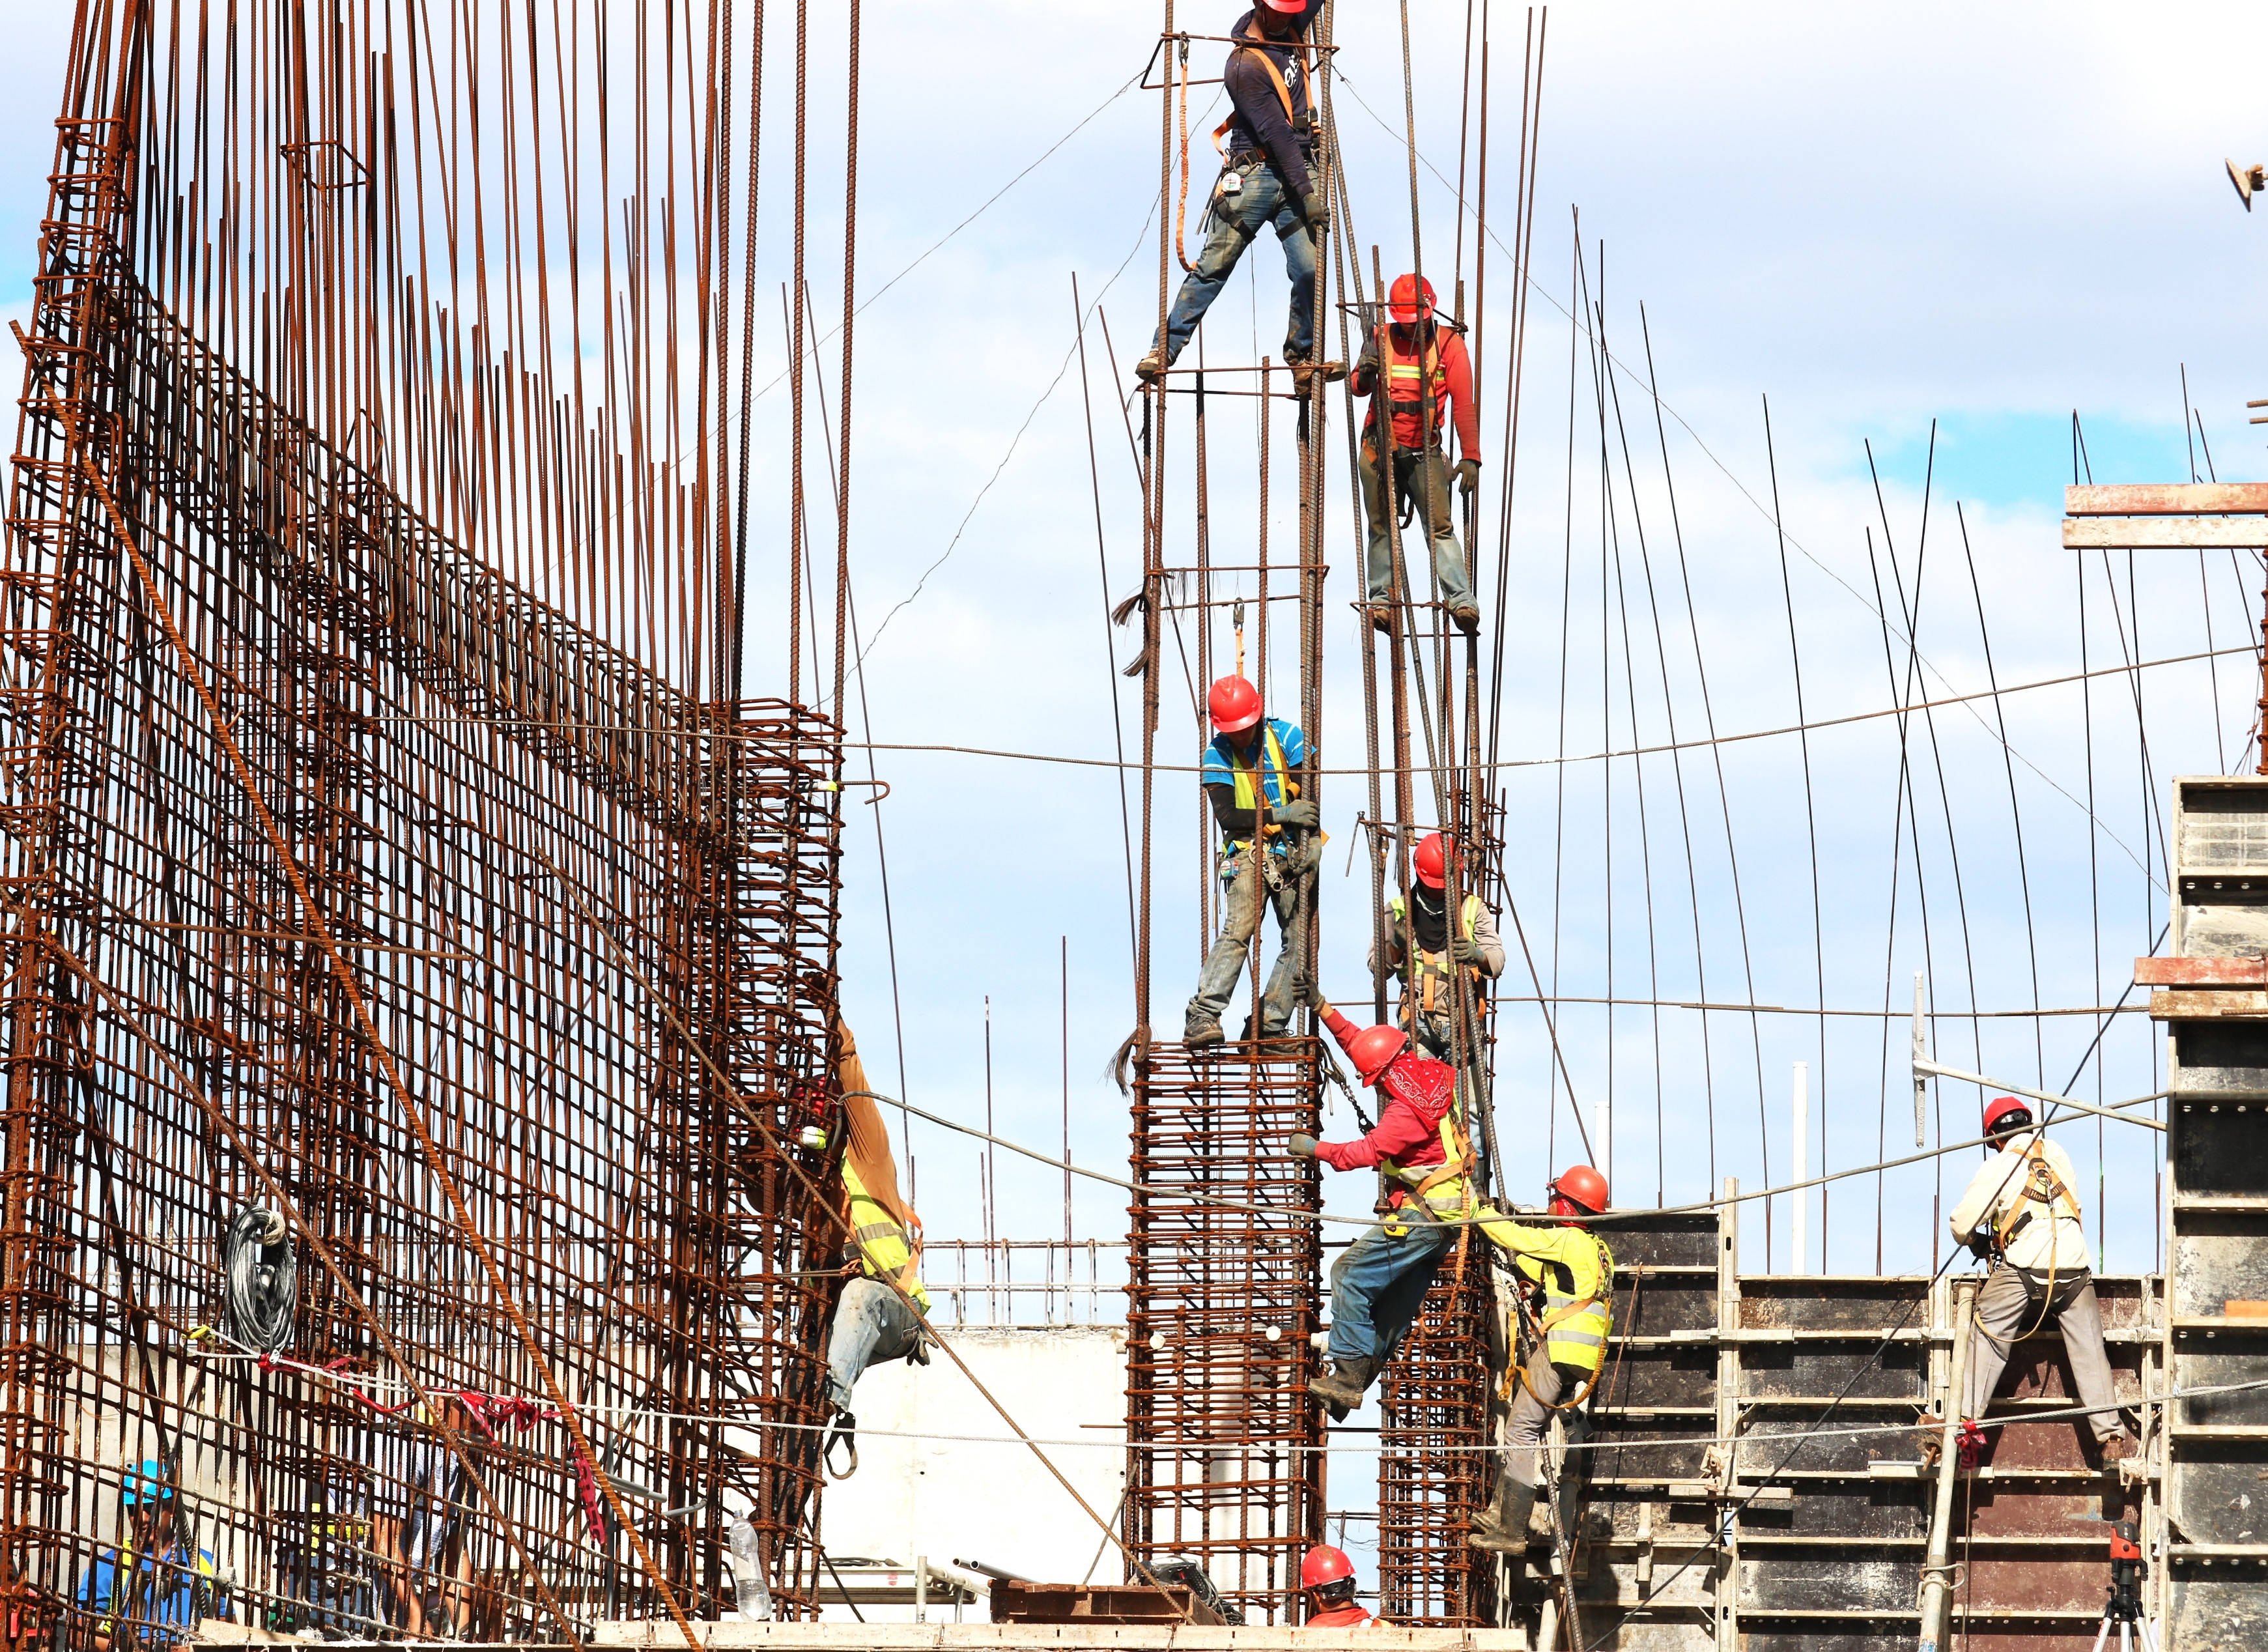 Construction Workers working on rebar on a construction site